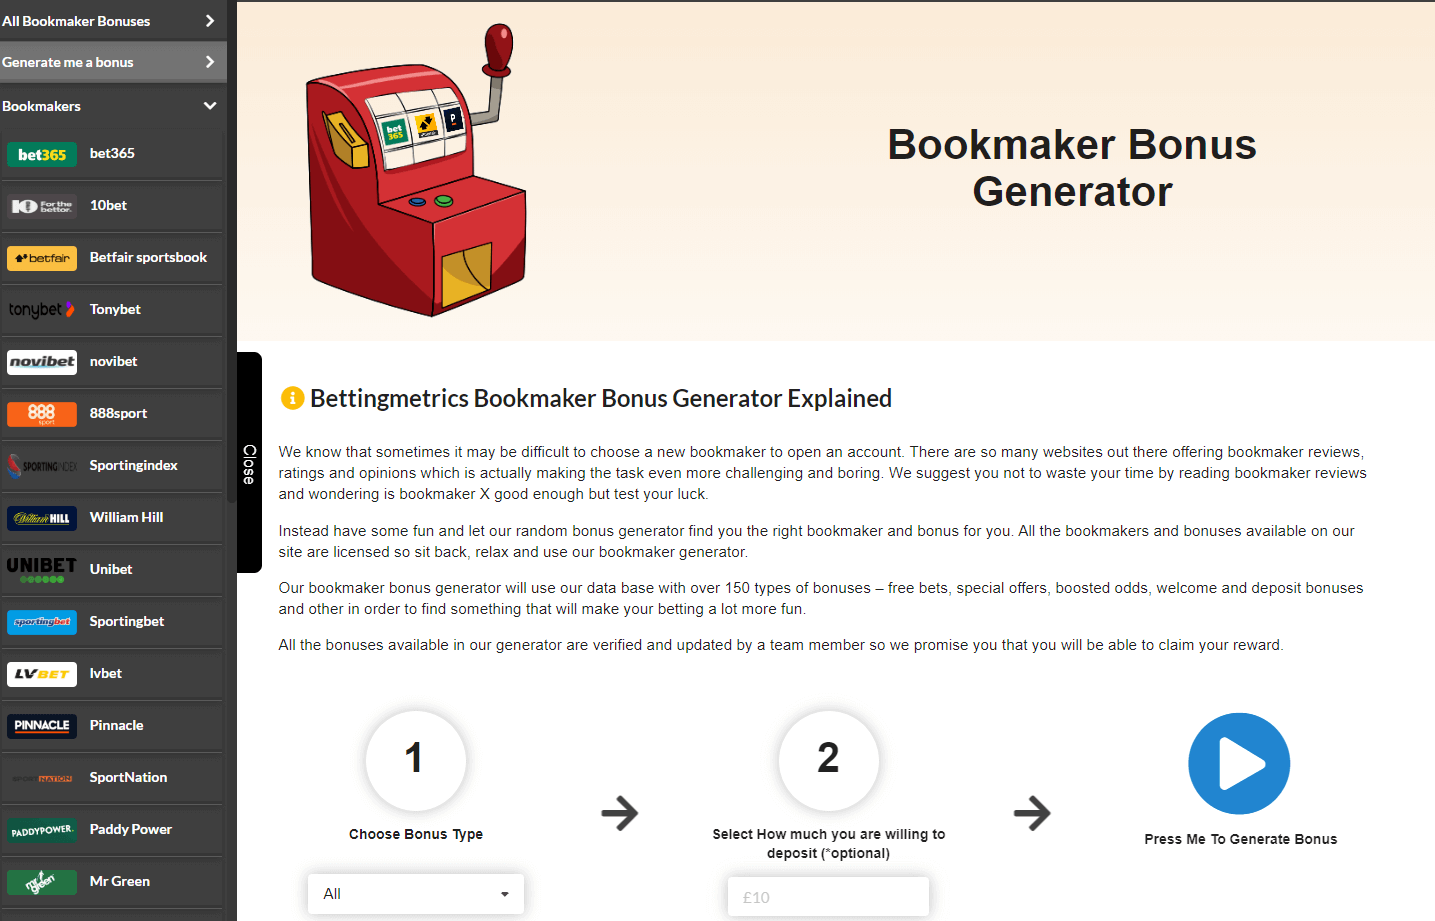 bookmaker bonus generator by bettingmetrics